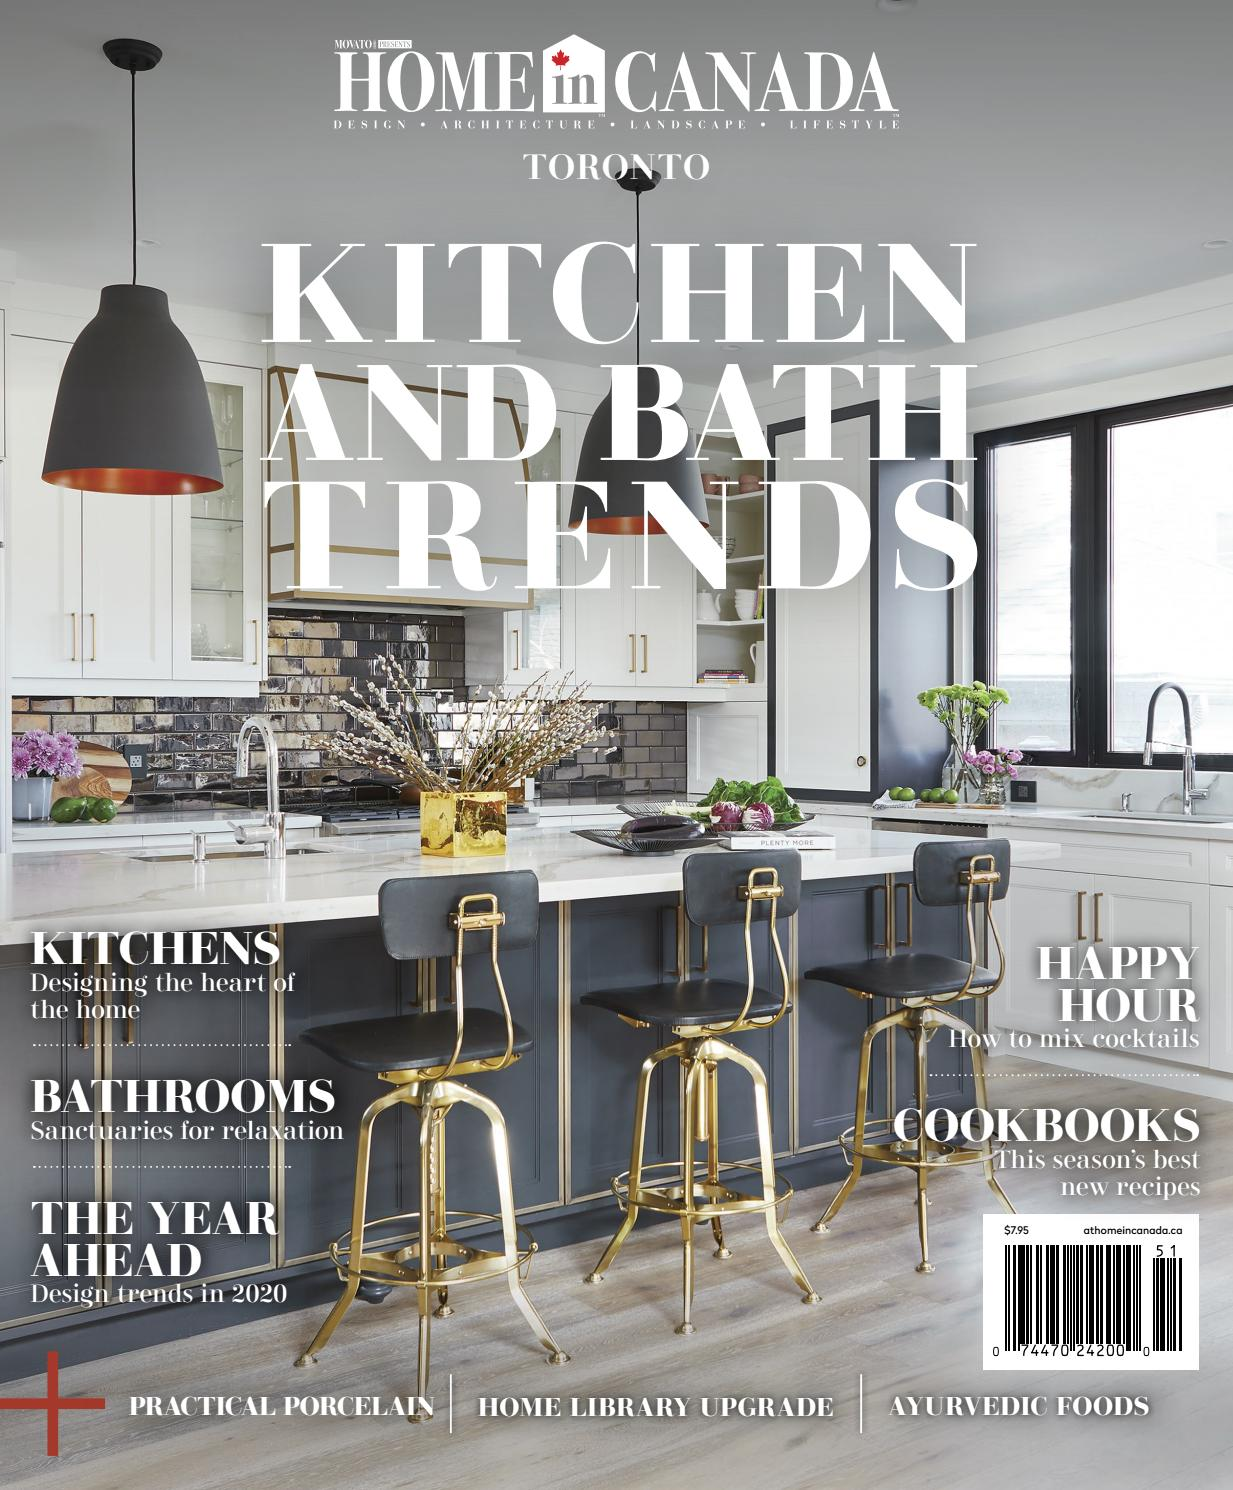 Home In Canada Toronto Kitchen And Bath Trends 2020 By Home In Canada Design Architecture Landscape Lifestyle Issuu